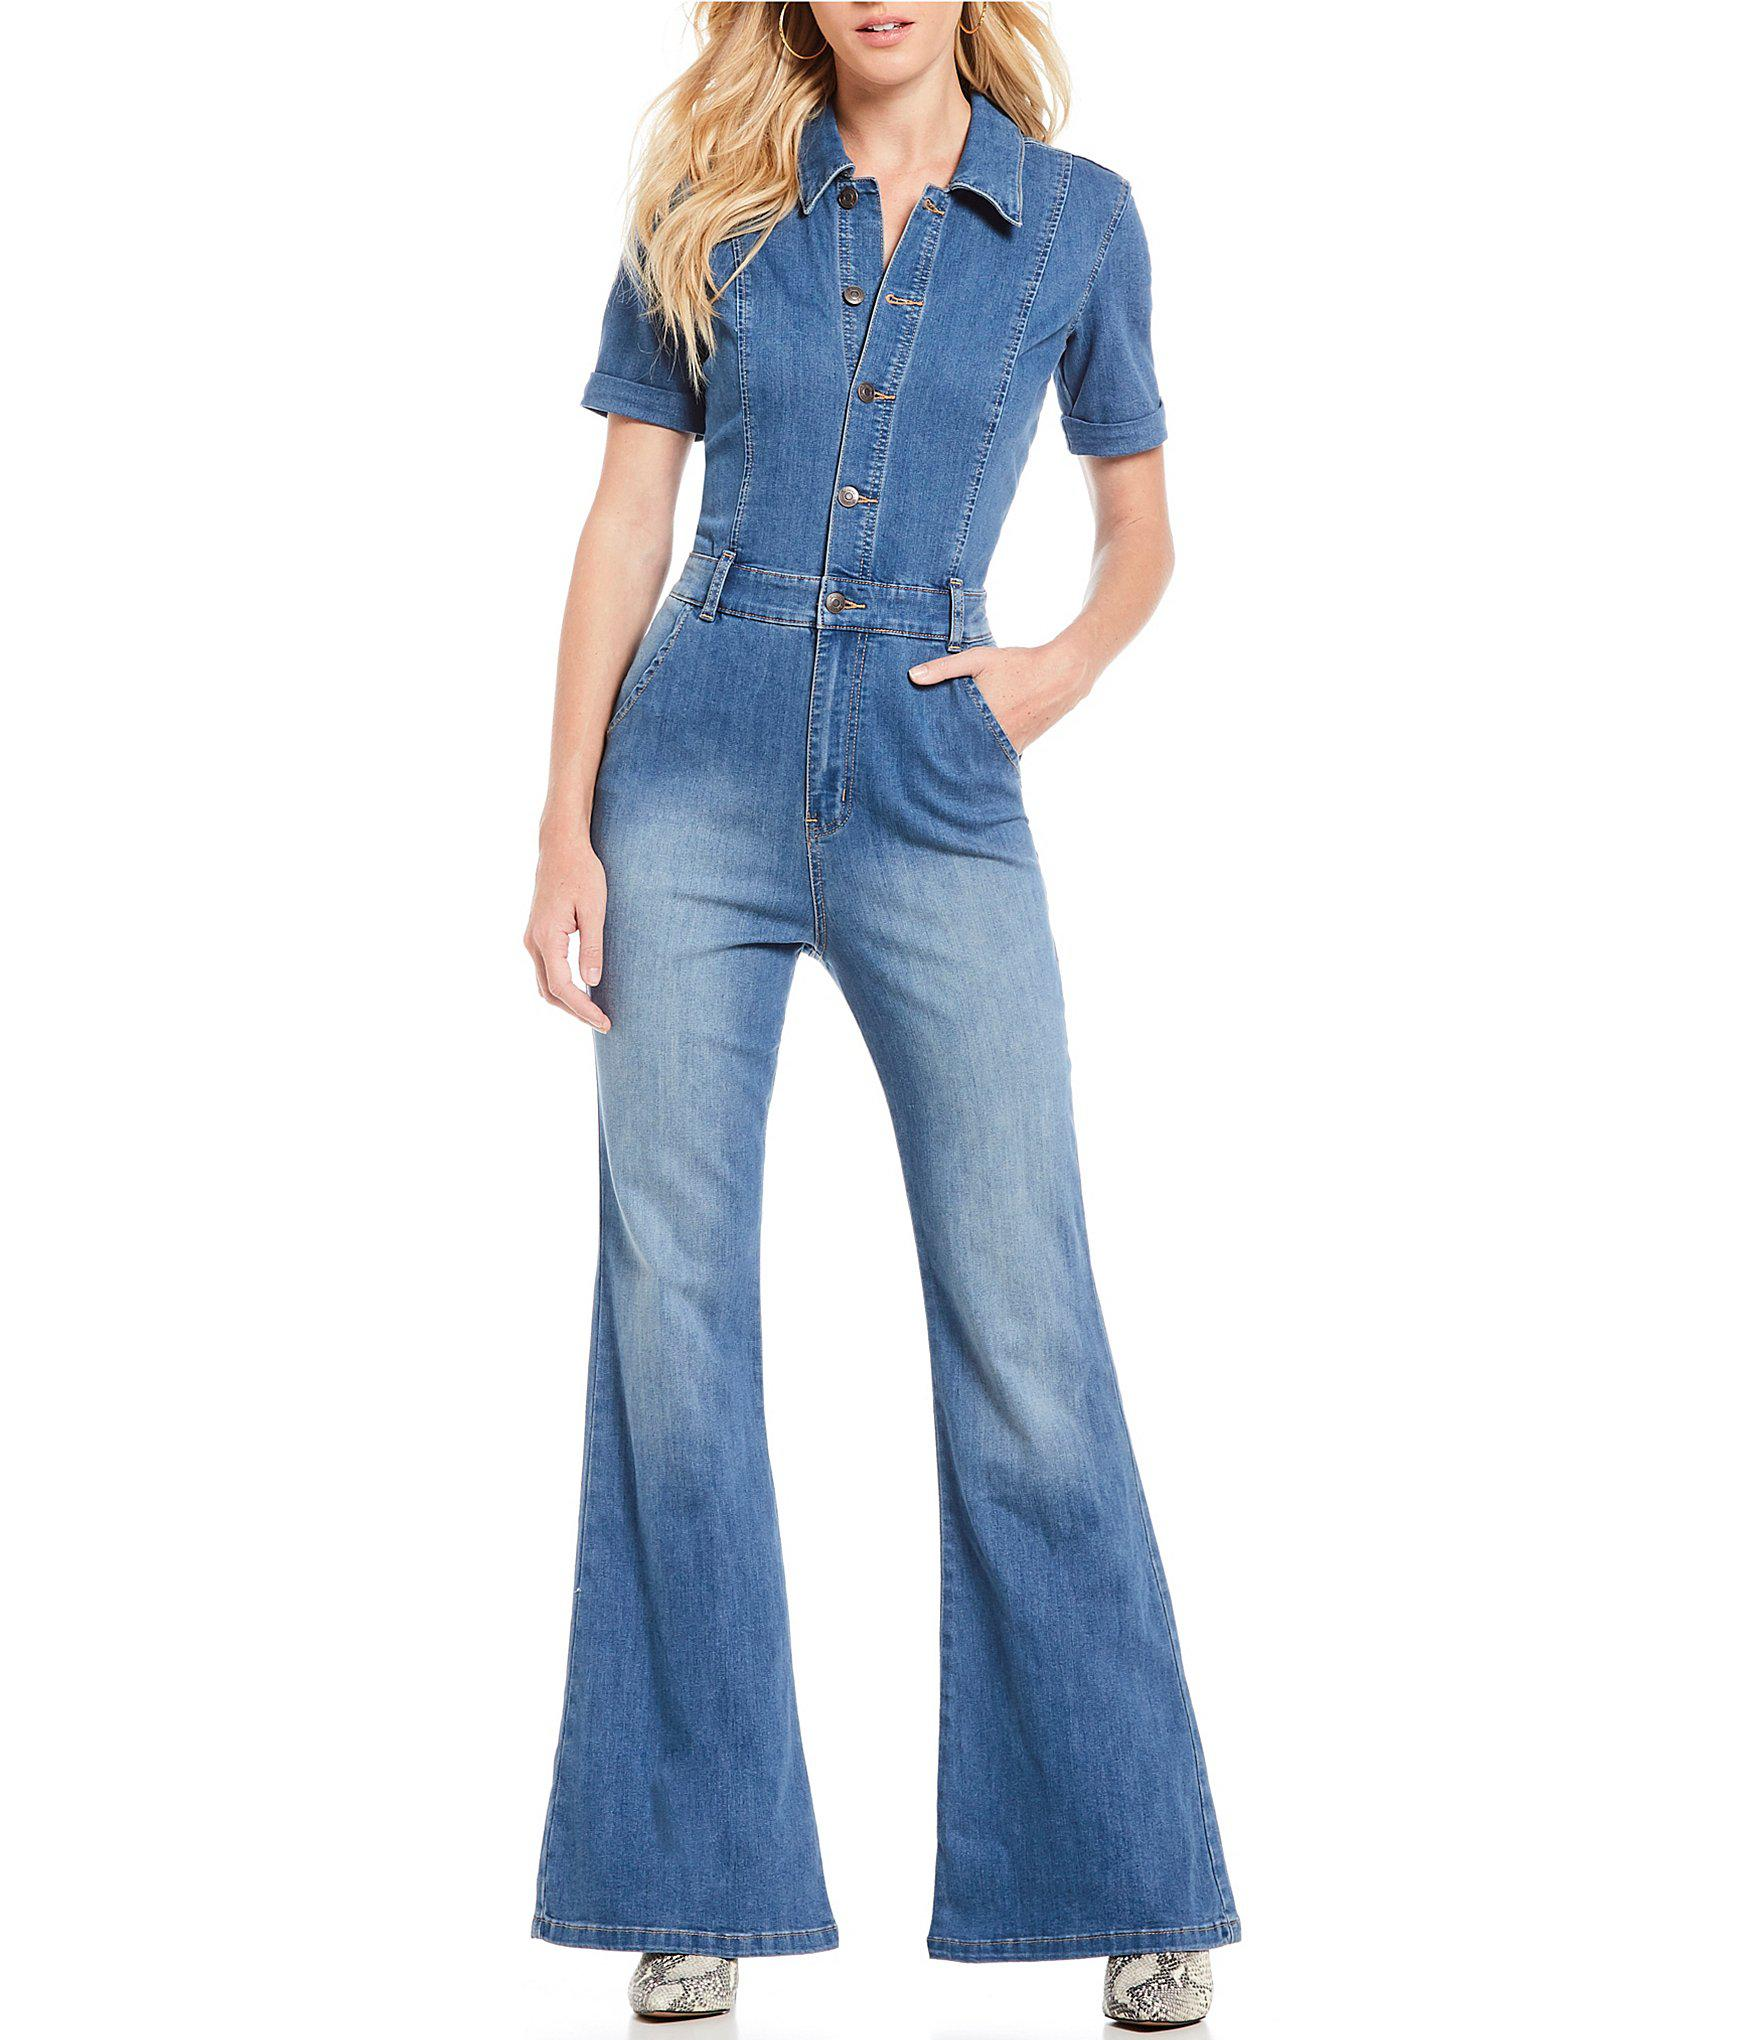 6a3d9d1b187 Lyst - Ella Moss Retro Button Front Flare Leg Denim Jumpsuit in Blue